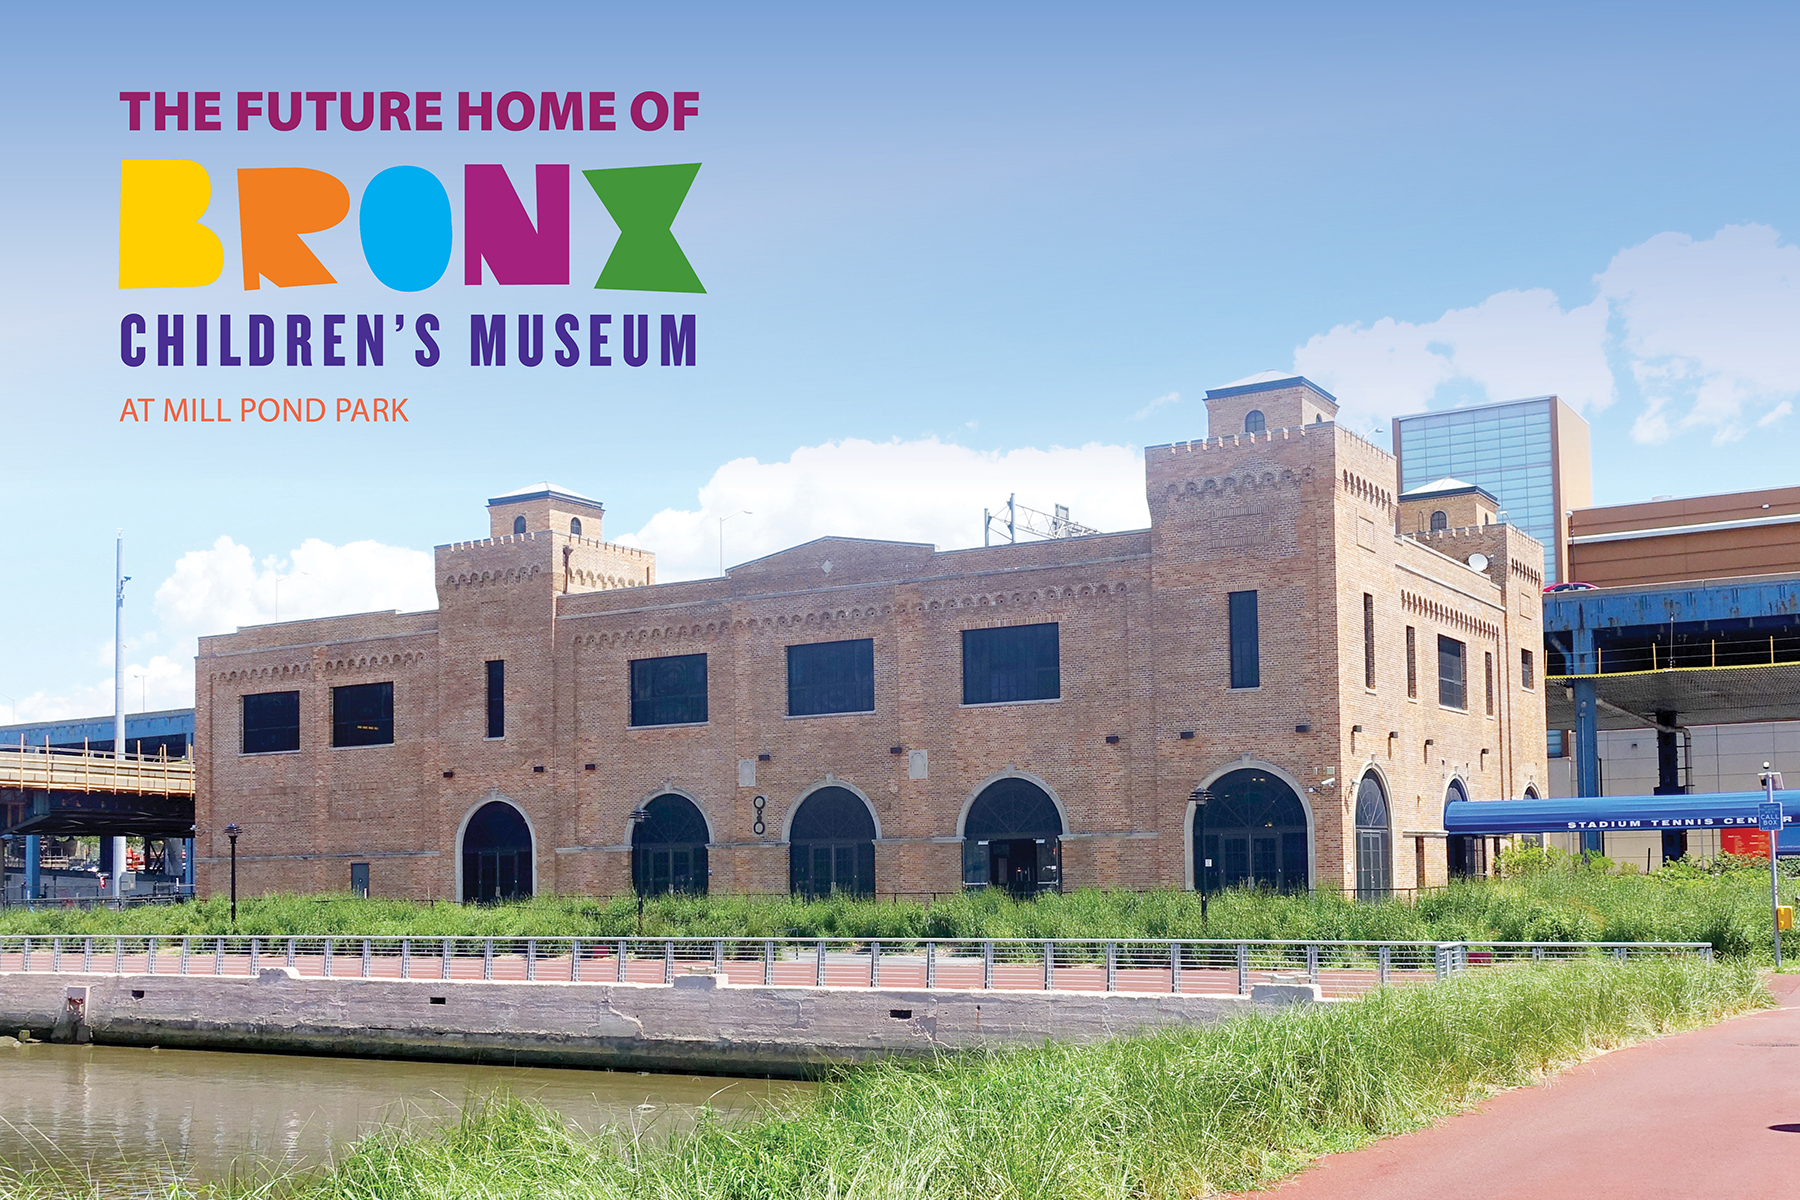 Bronx Children's Museum: Development for 2018